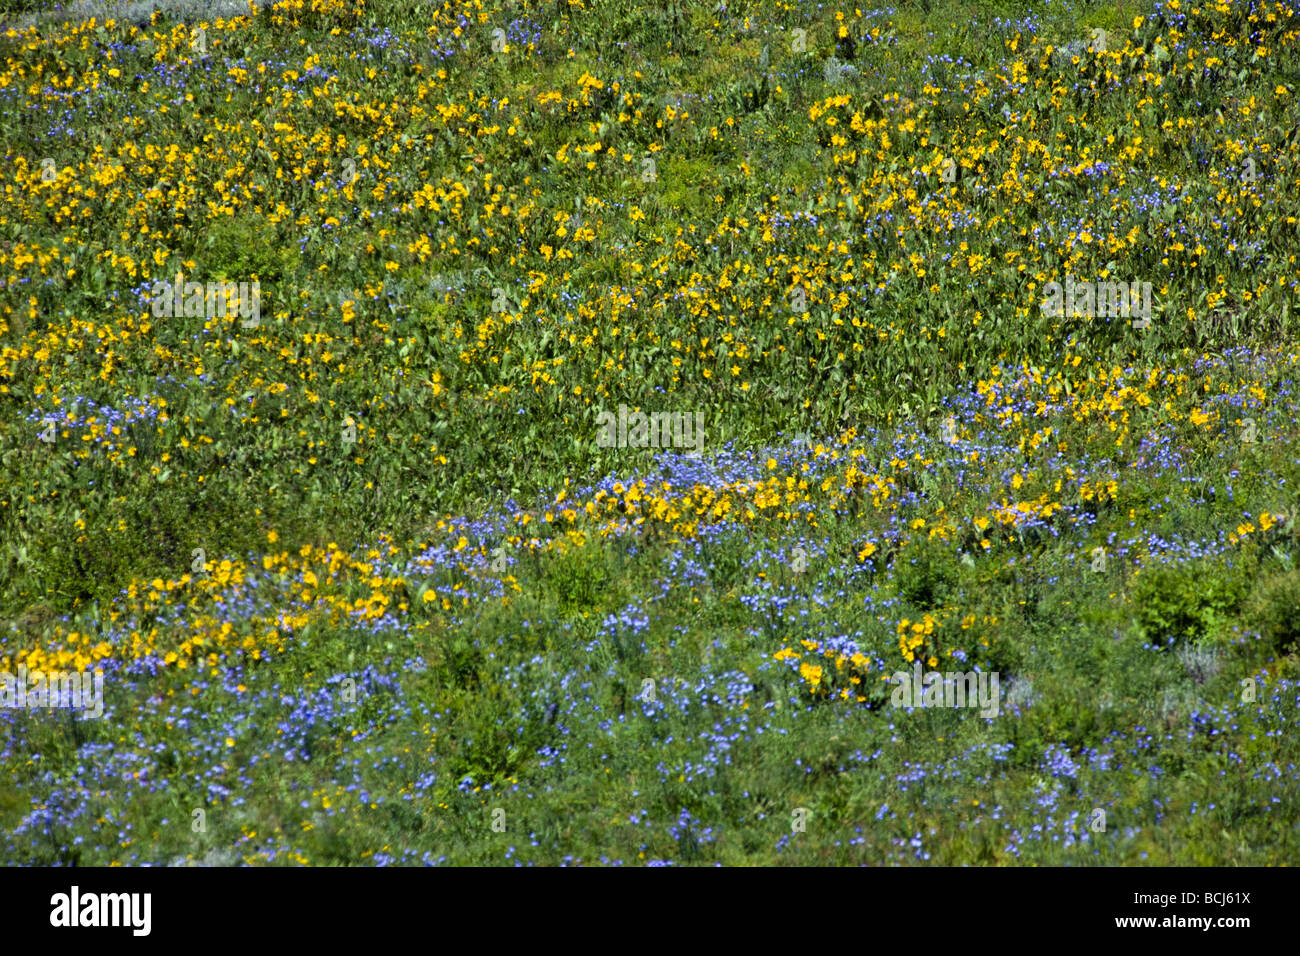 Mules Ear Aspen Sunflowers and Blue Flax below Snodgrass Mountain near Mount Crested Butte Colorado USA Stock Photo